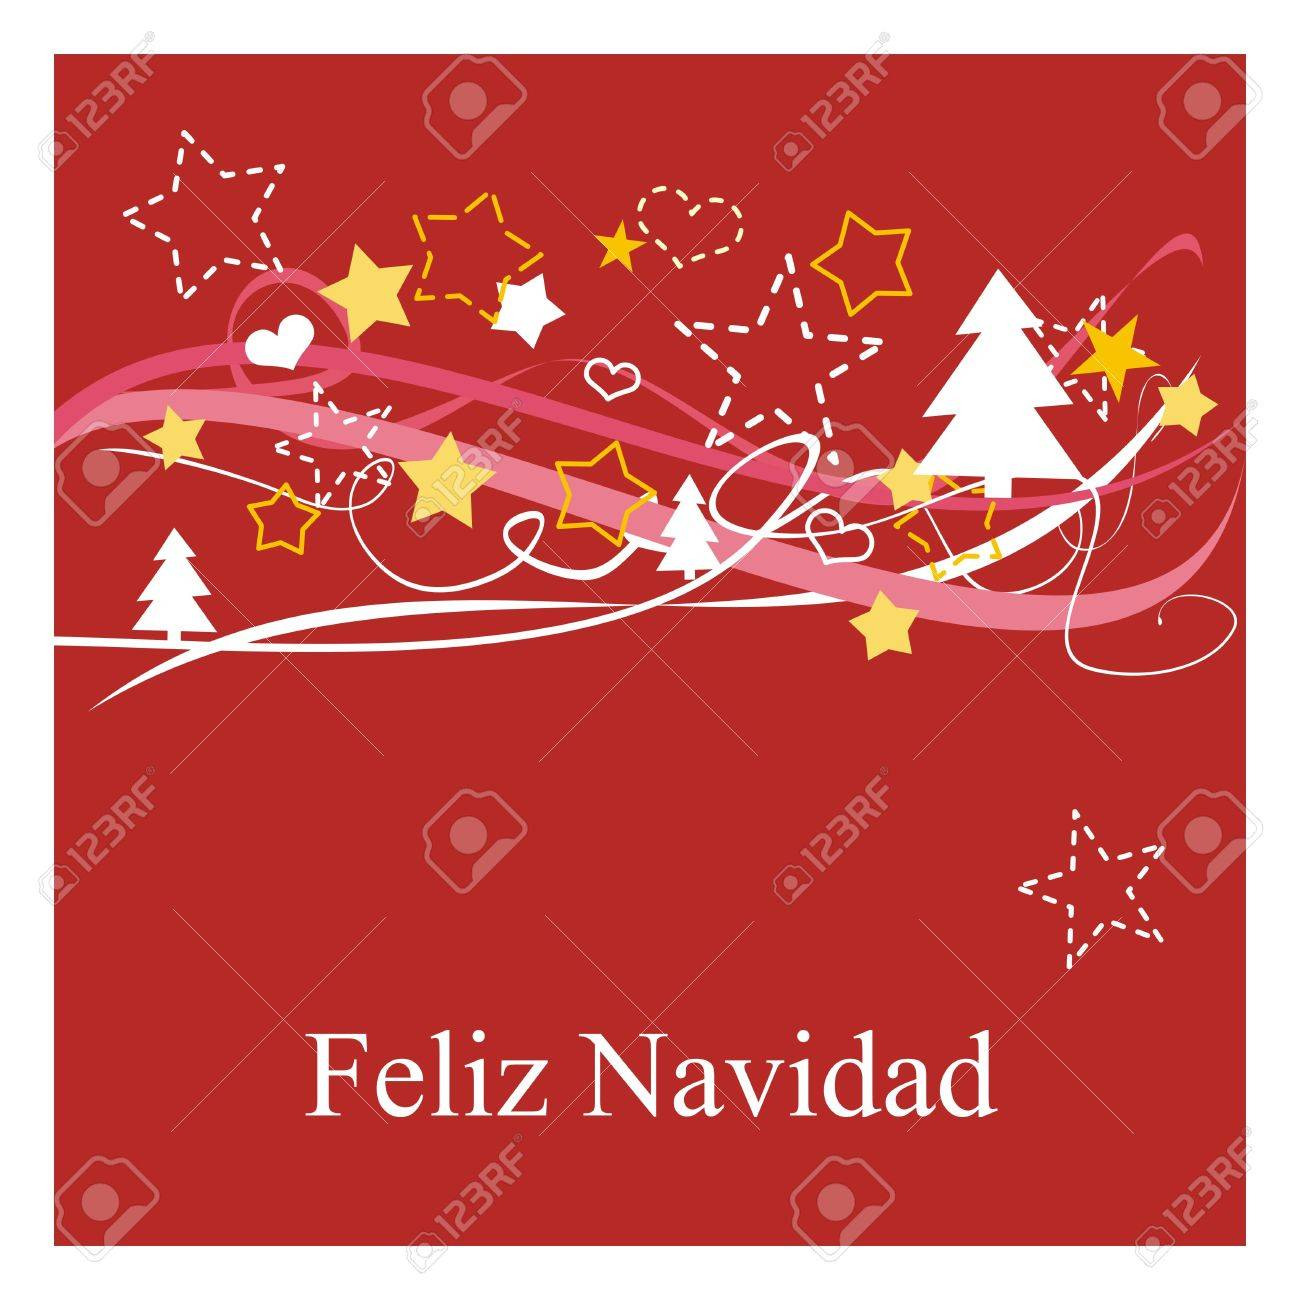 Feliz Navidad! Espanol - Spanish Christmas Card Or Invitation ...